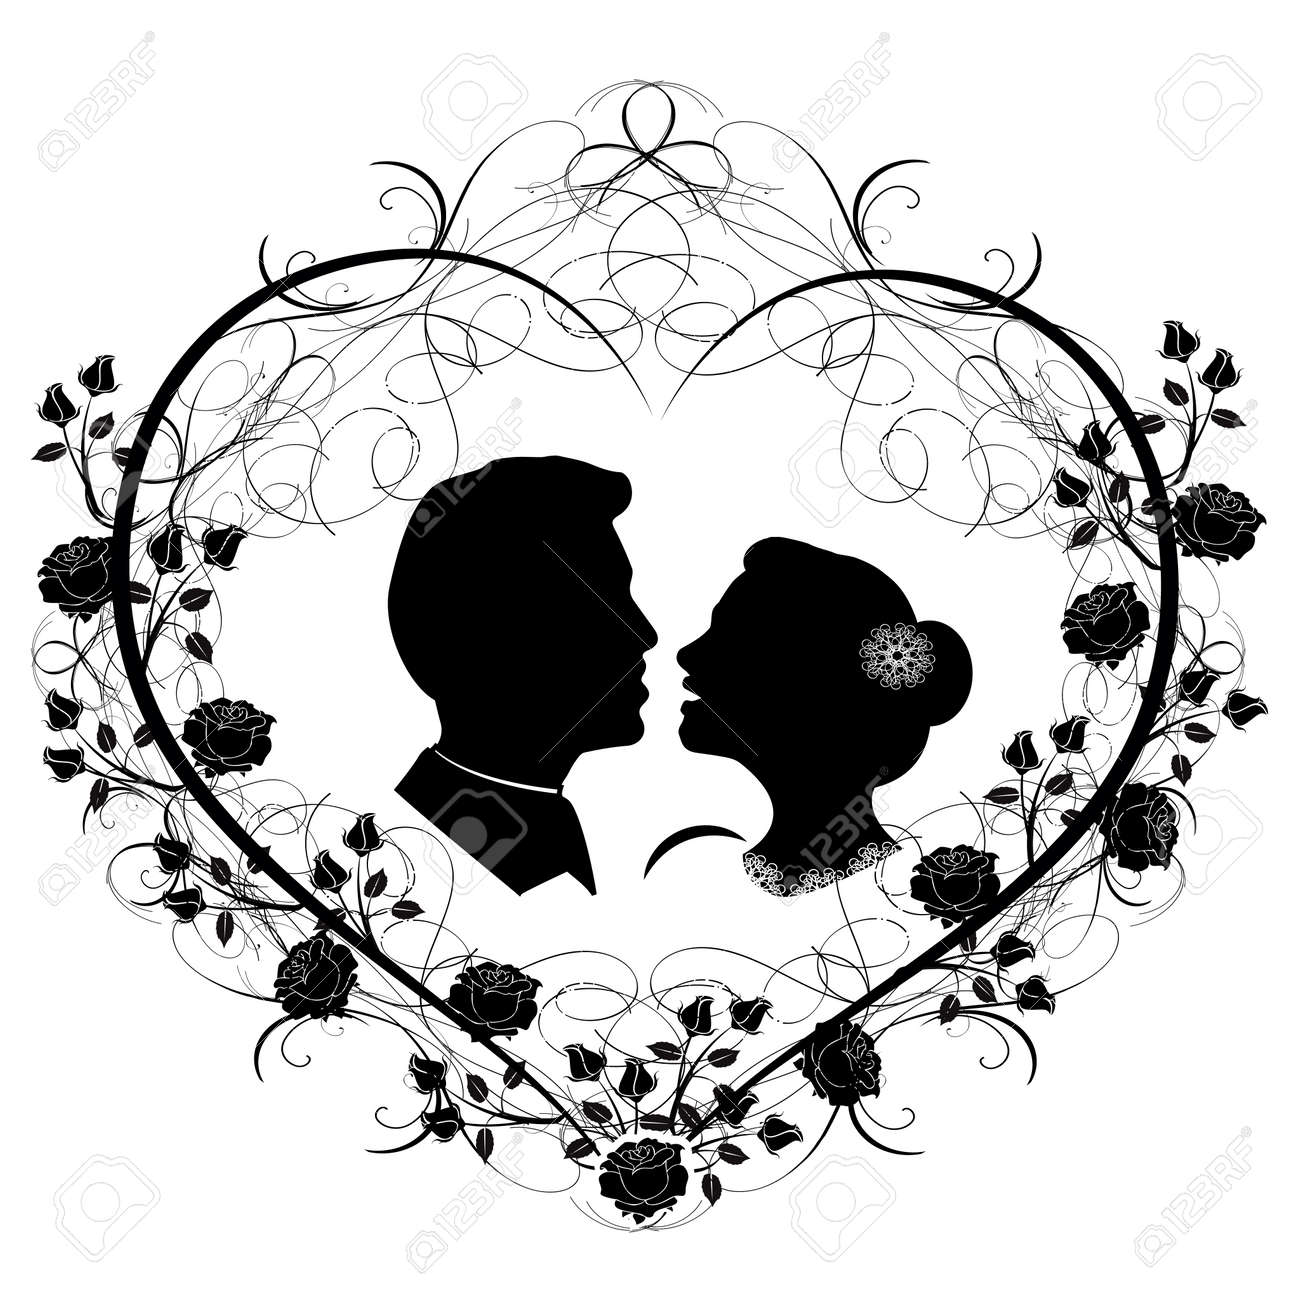 Wedding silhouette 12 royalty free cliparts vectors and stock vector wedding silhouette 12 junglespirit Gallery